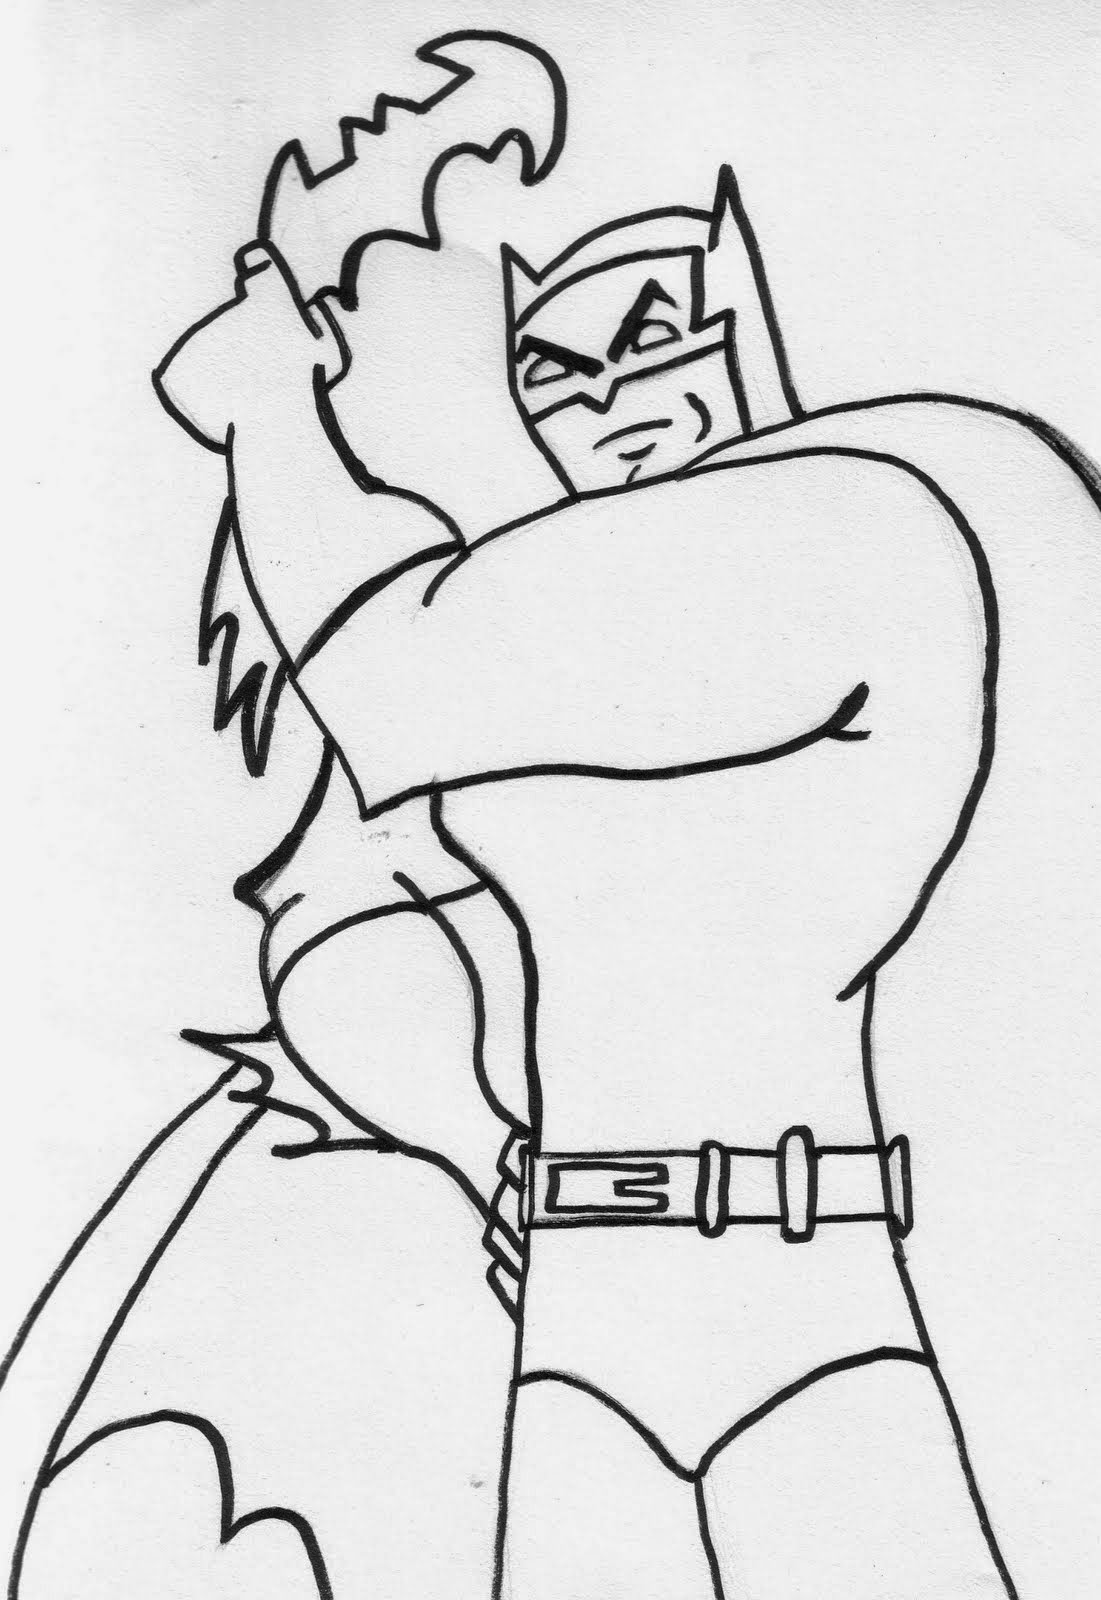 Coloring pages batman free downloadable coloring pages for Batman coloring page